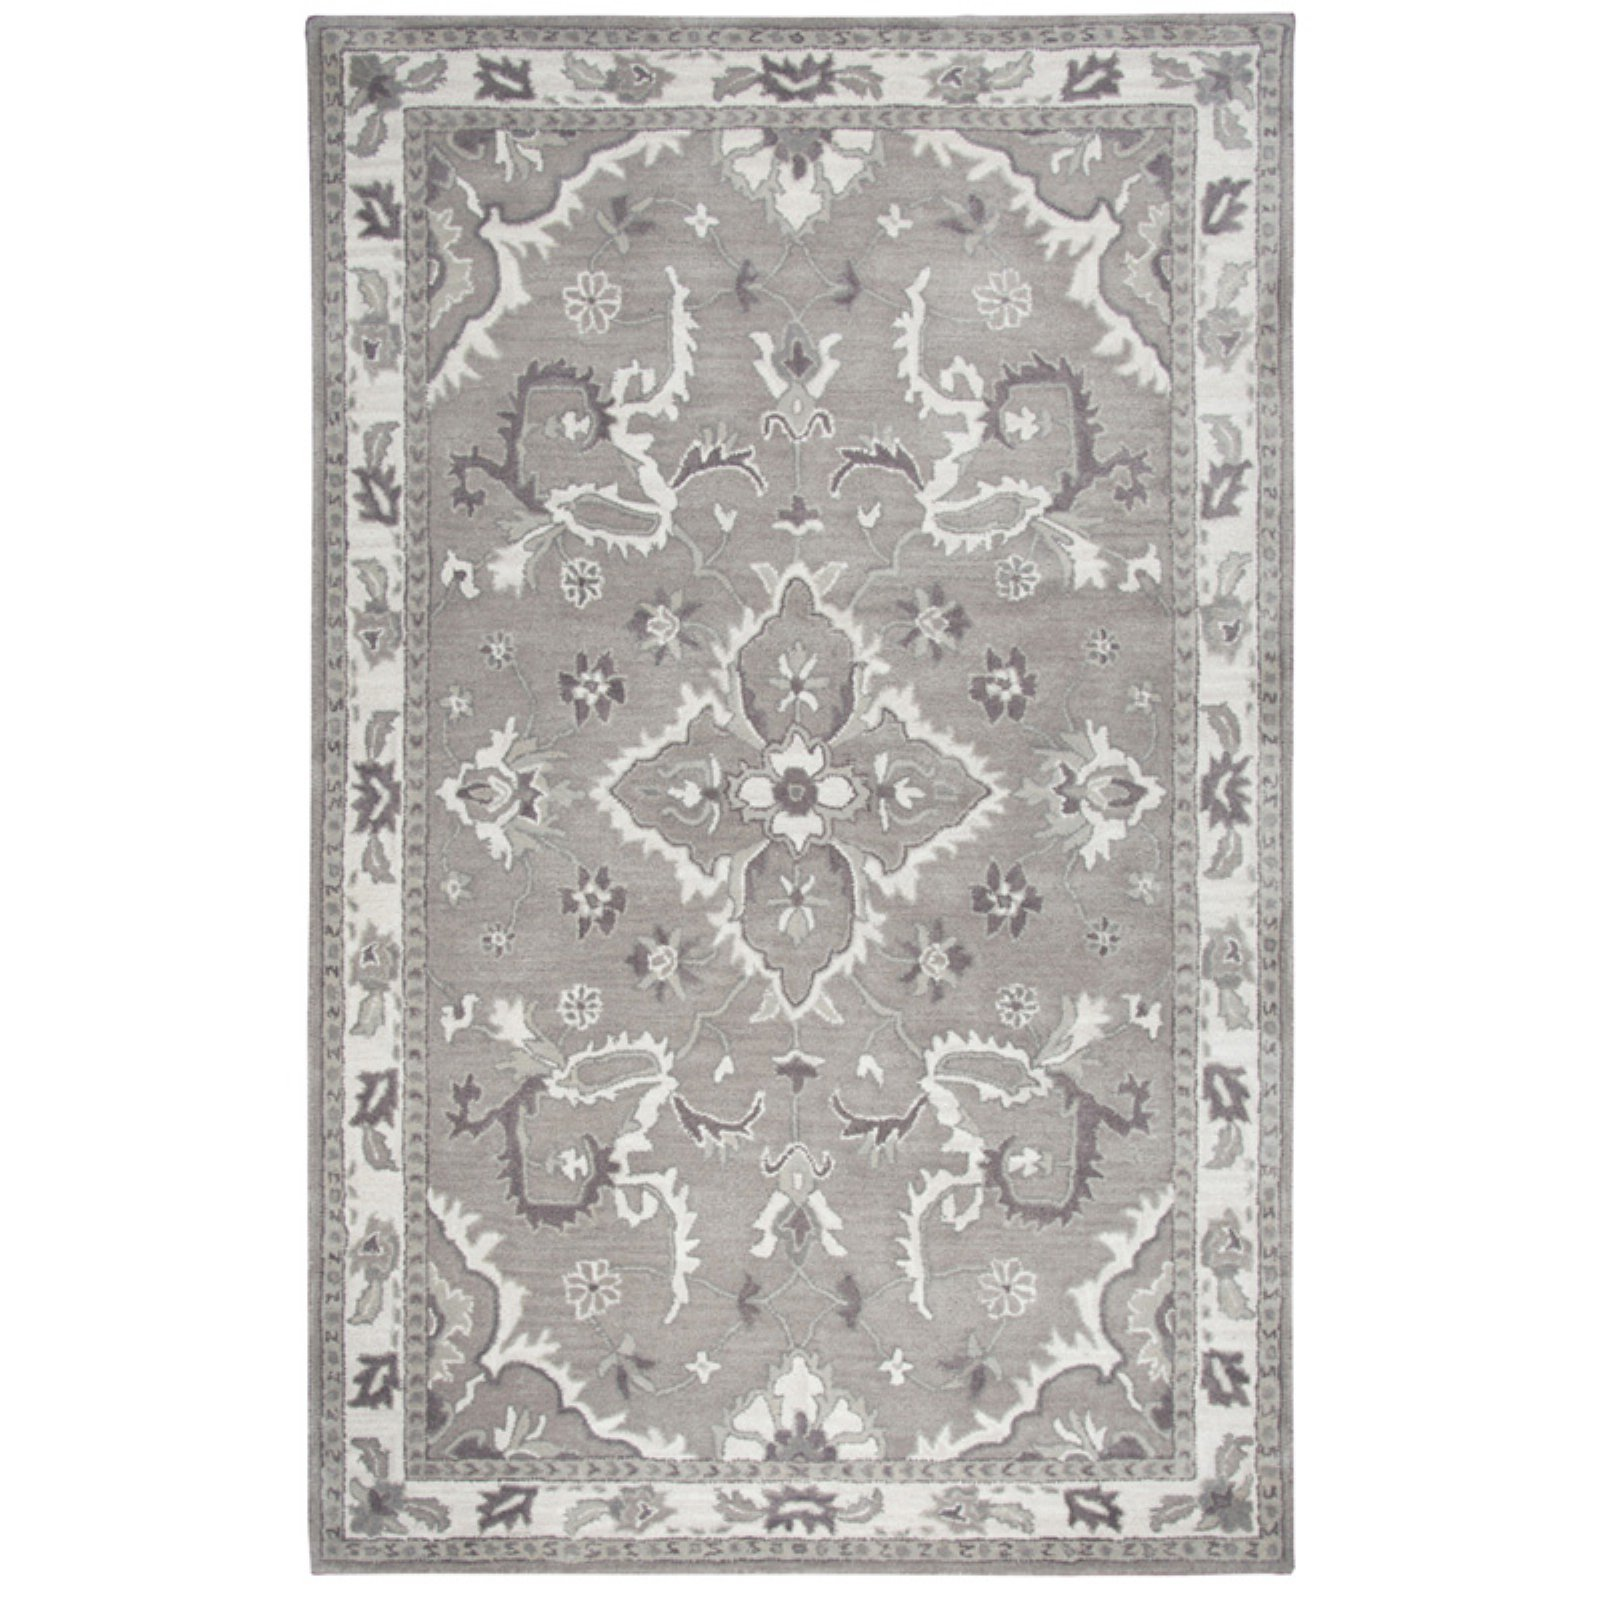 RIZZY HOME VALINTINO COLLECTIONS VN102A 9' x 12' AREA RUGS